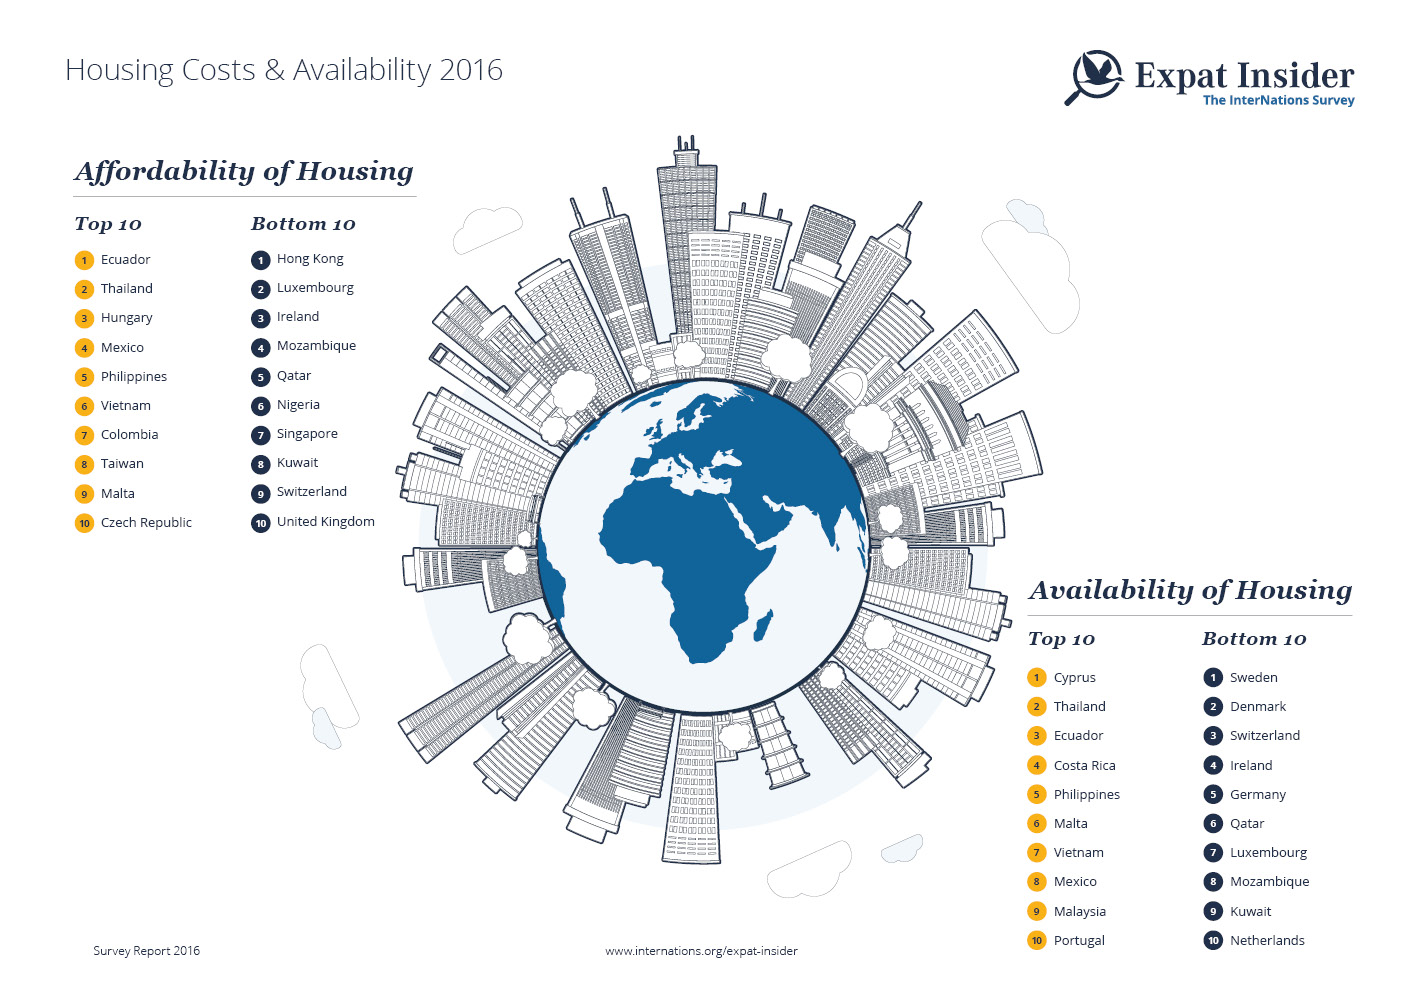 Affordability and Availability of Expat Housing 2016 — infographic